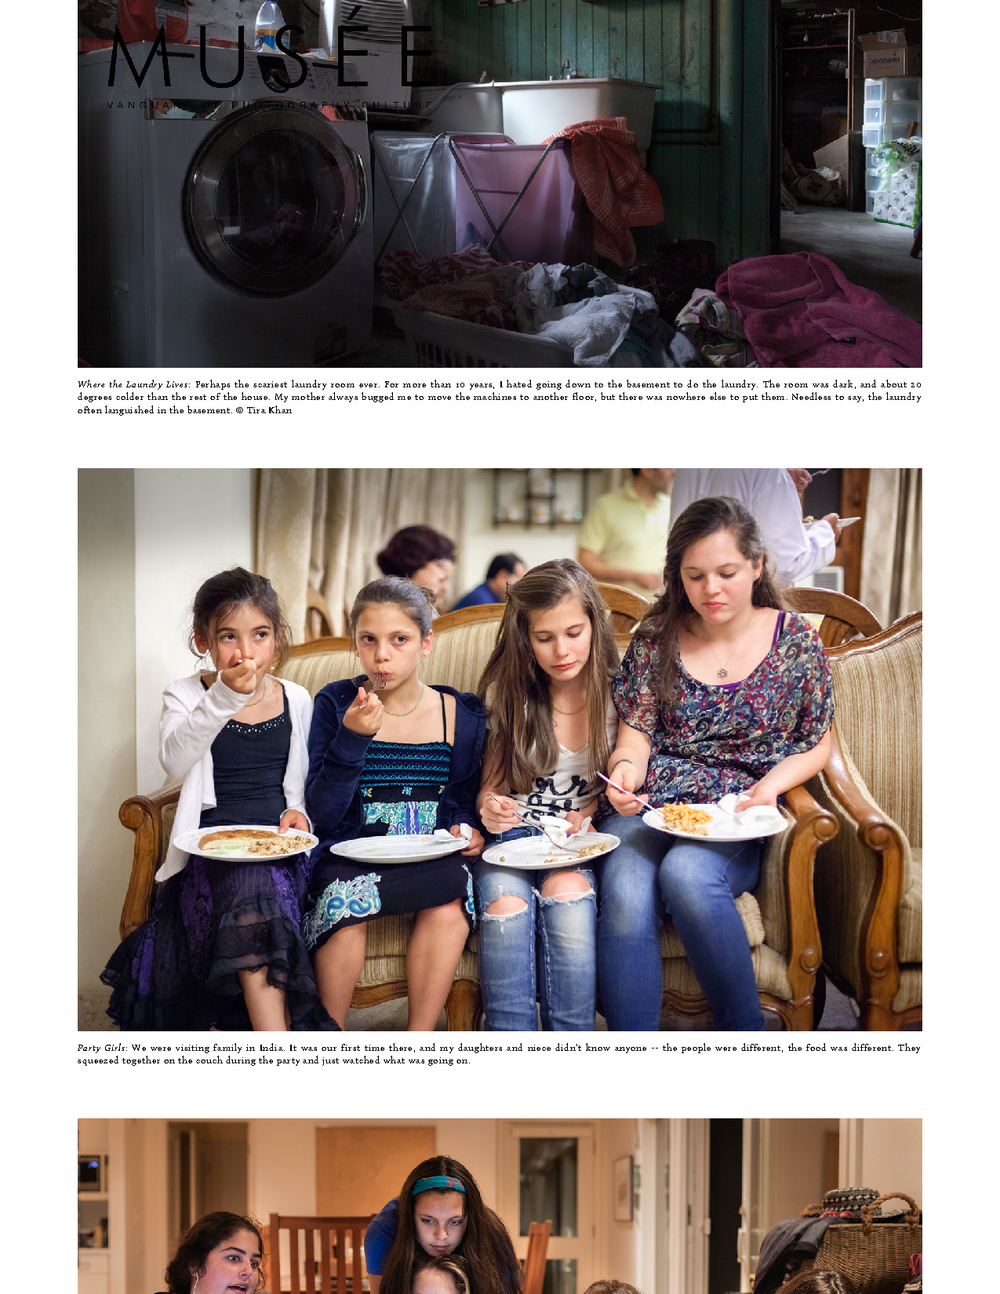 Pages from Photo Journal Monday_ Tira Khan — Musée Magazine.pdf_Page_5.png